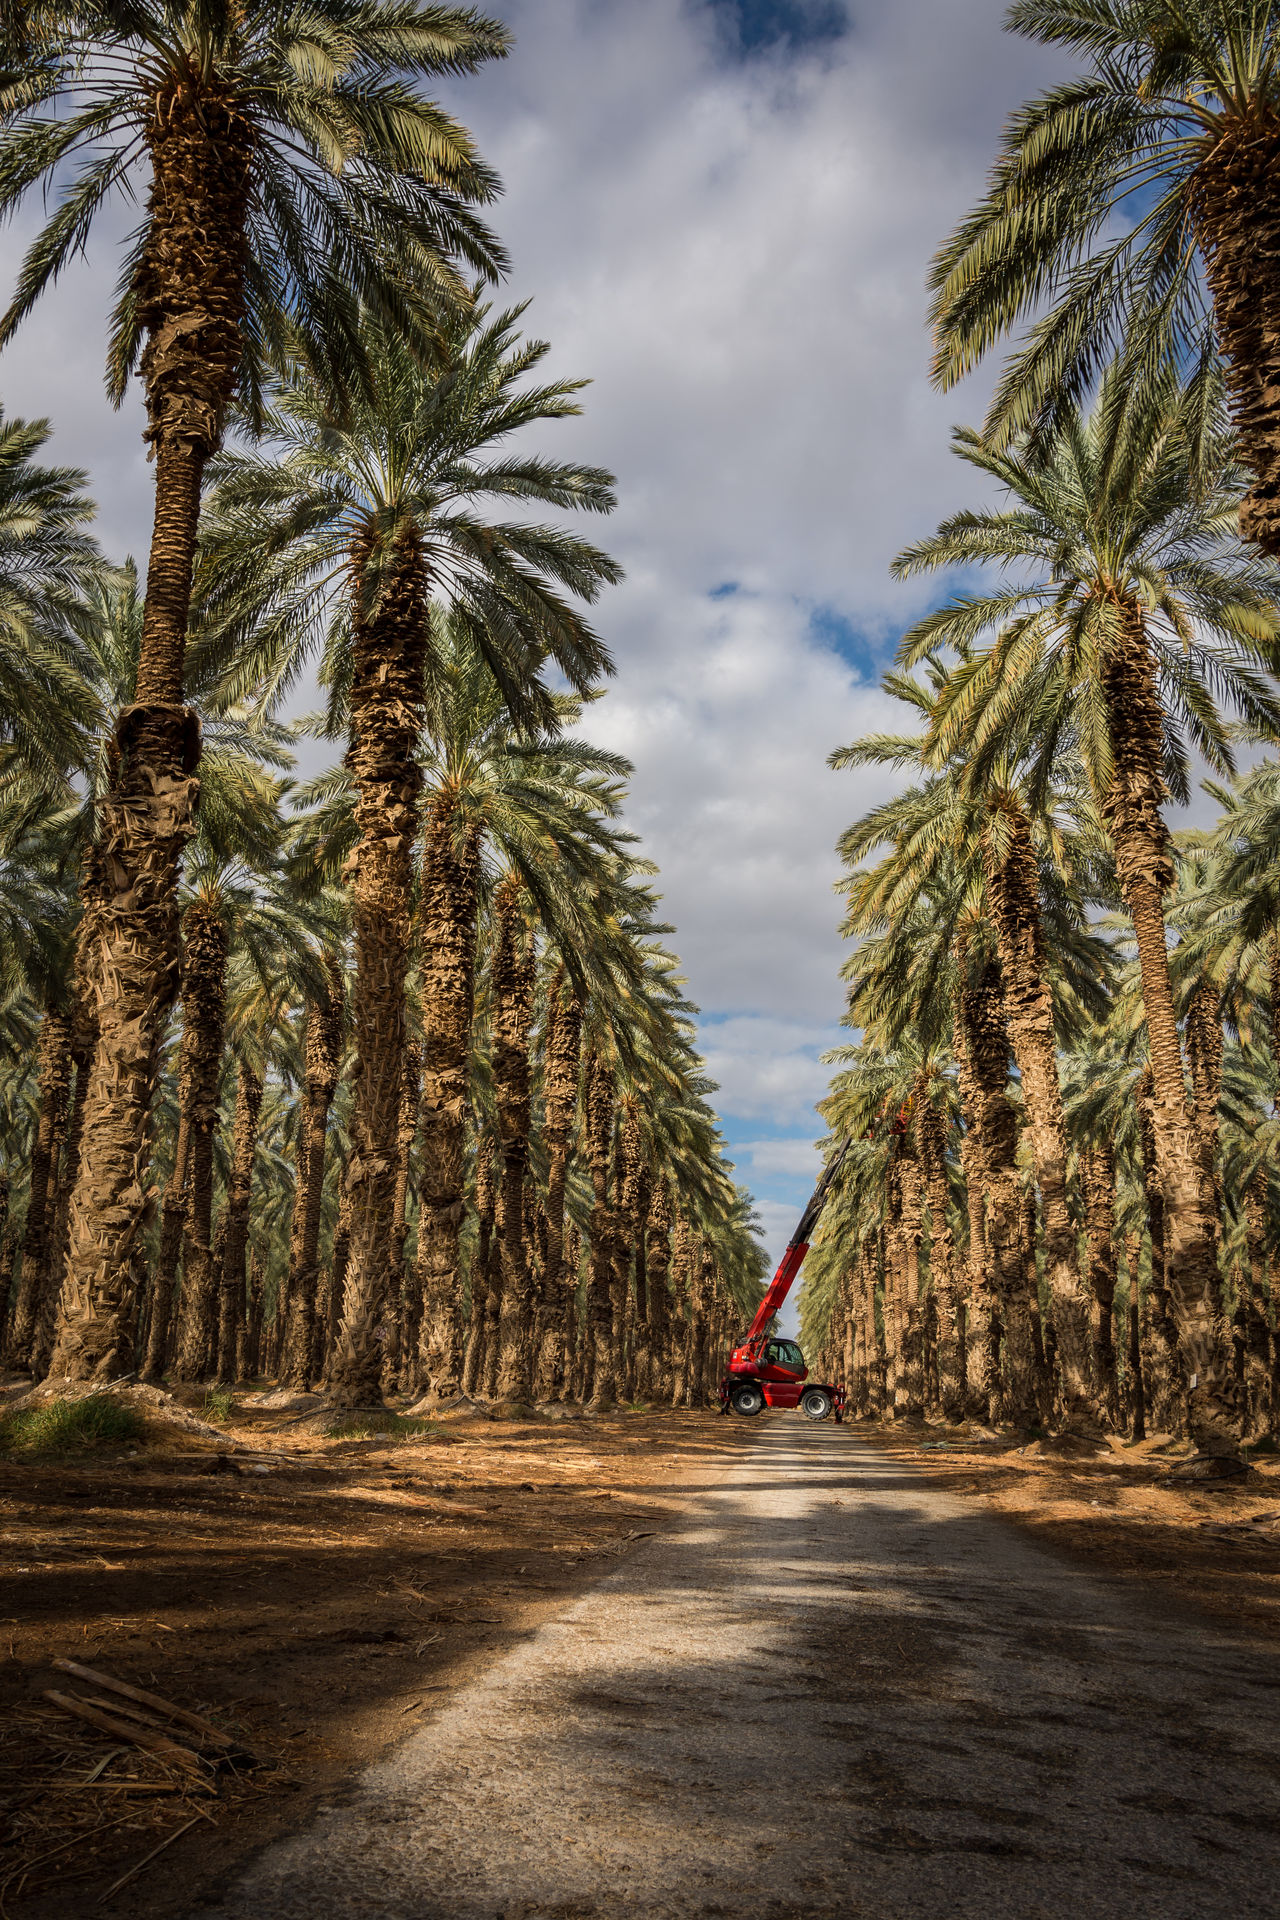 Picking dates At Dead Sea - Israel Beauty In Nature Cloud - Sky Deadsea Finding New Frontiers Israel Nature Palm Tree Palm Tree Palm Trees Road Transportation Tree